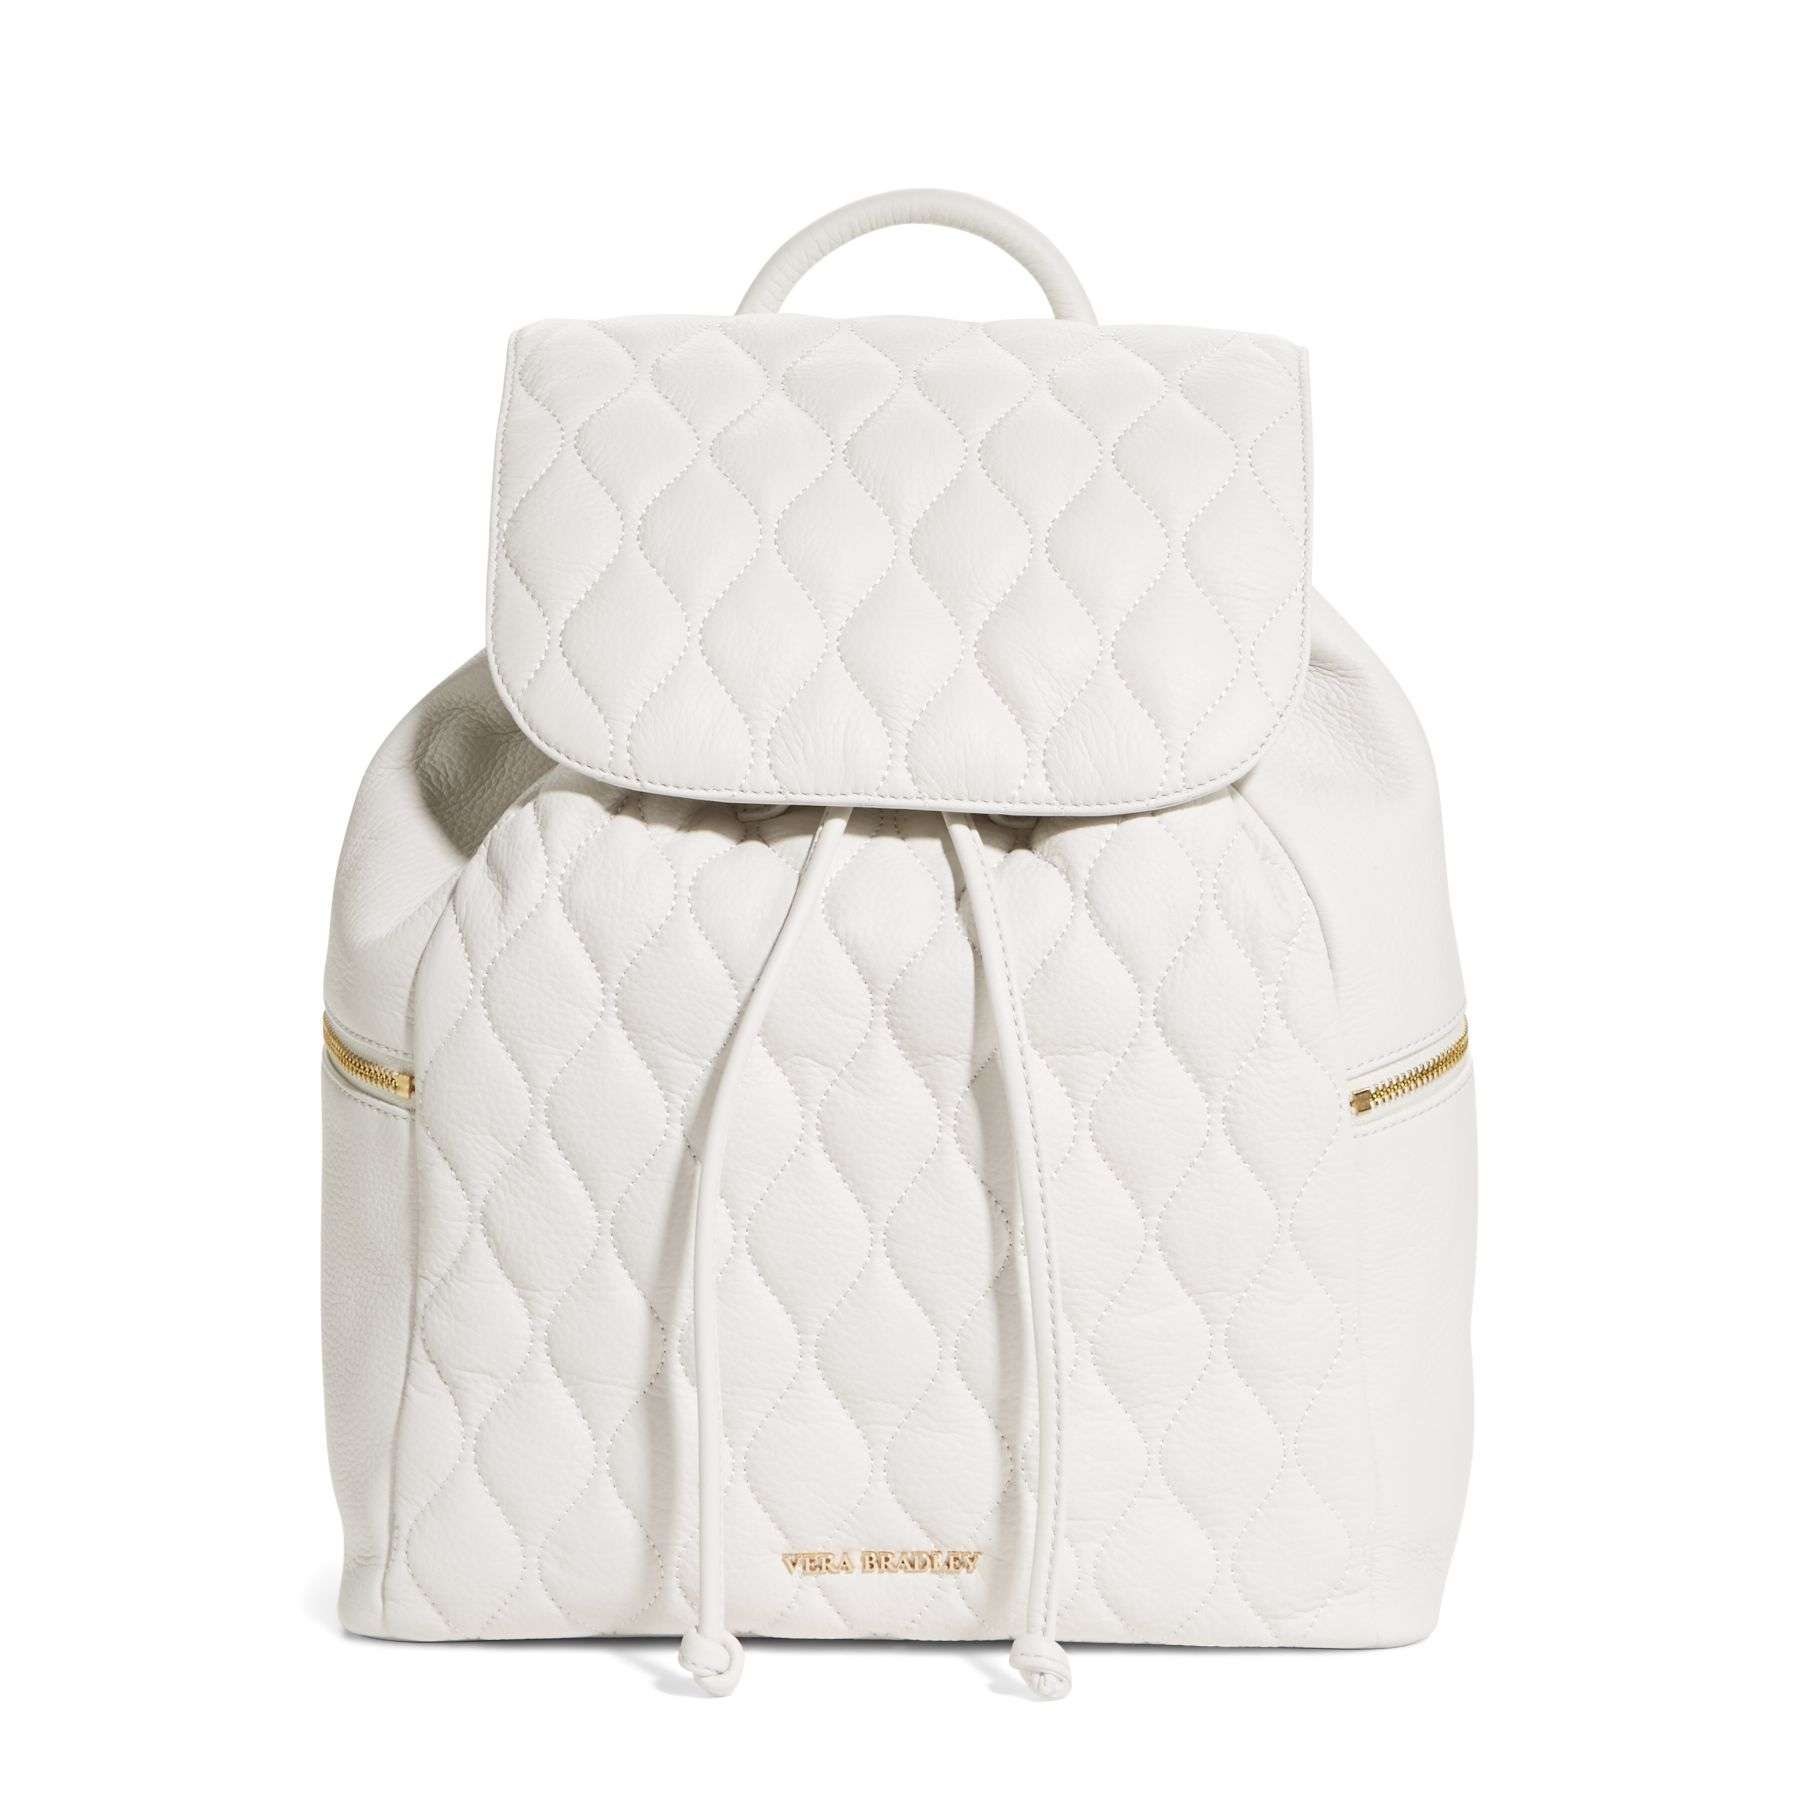 Vera Bradley Quilted Leather Amy Backpack Purse White | eBay